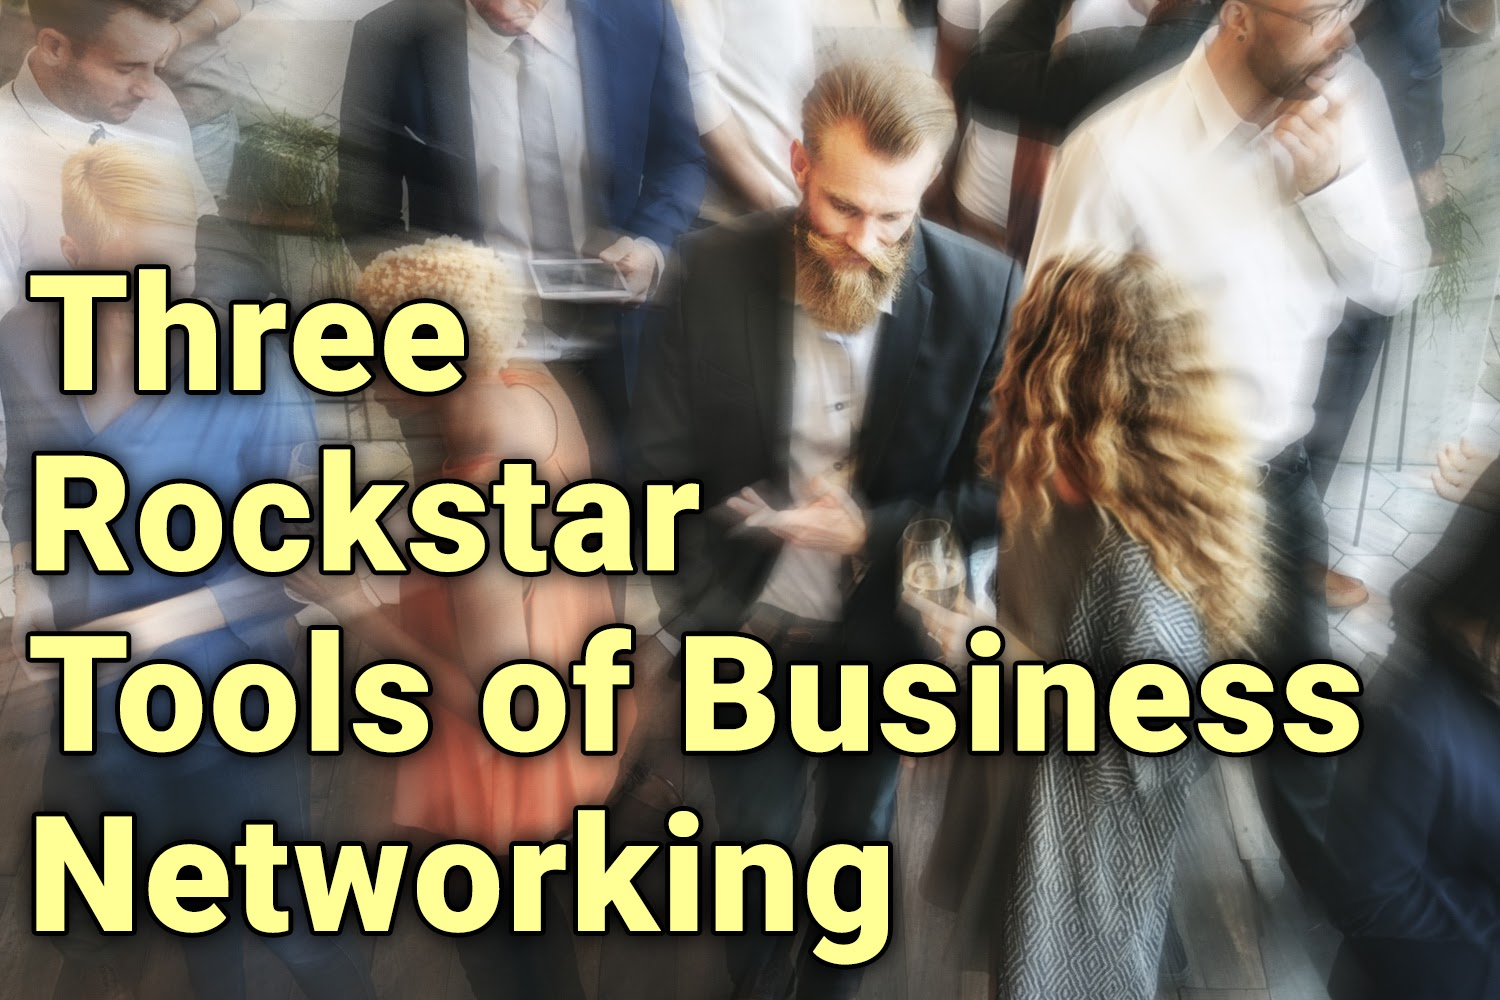 The Three Rockstar Tools of Business Networking